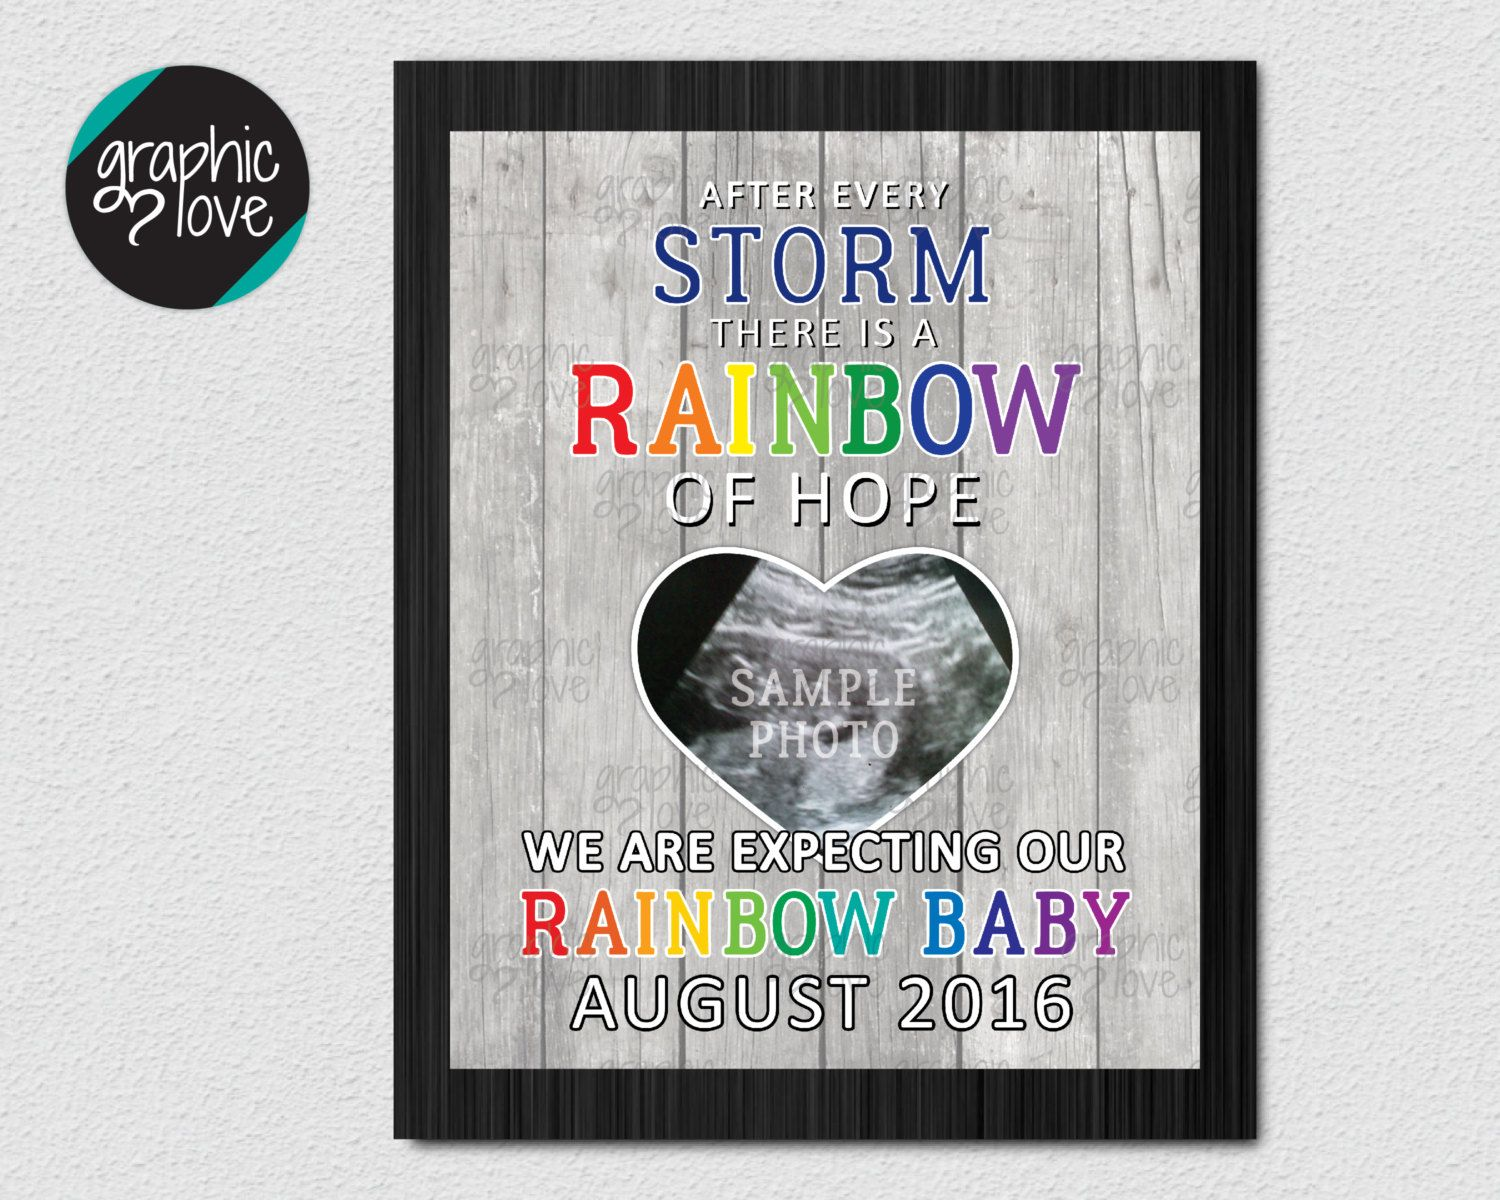 Personalized Ultrasound Photo Rainbow Baby Pregnancy Announcement